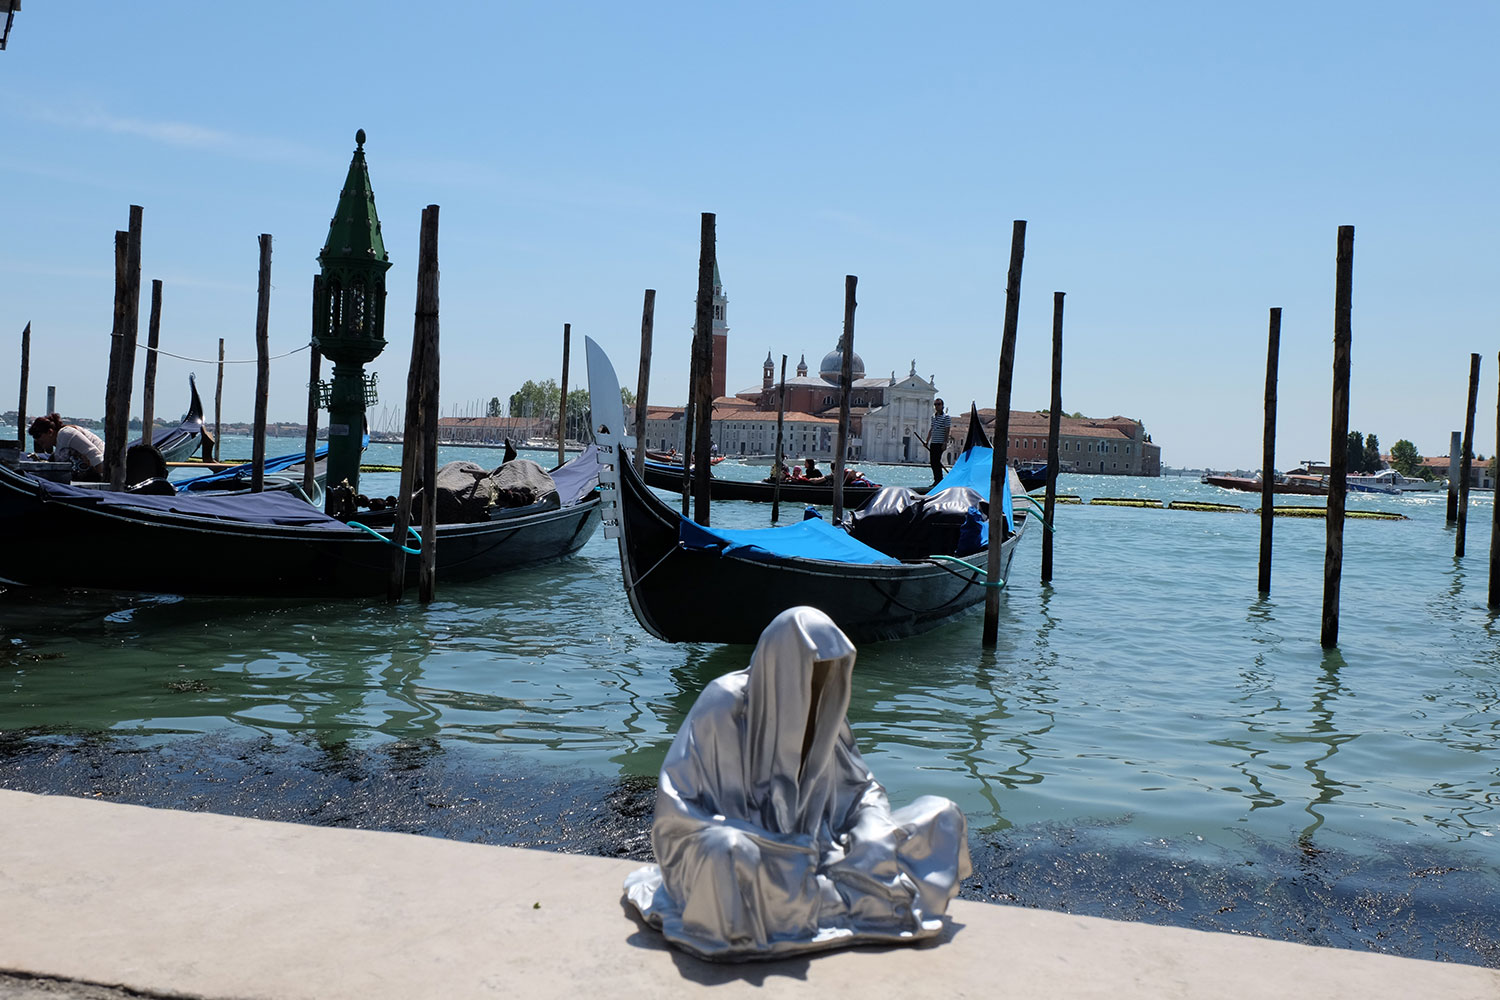 venice-biennale-venezia-biennial-guardians-of-time-manfred-kili-kielnhofer-contemporary-art-sculpture-arts-arte-design-statue-show-2003